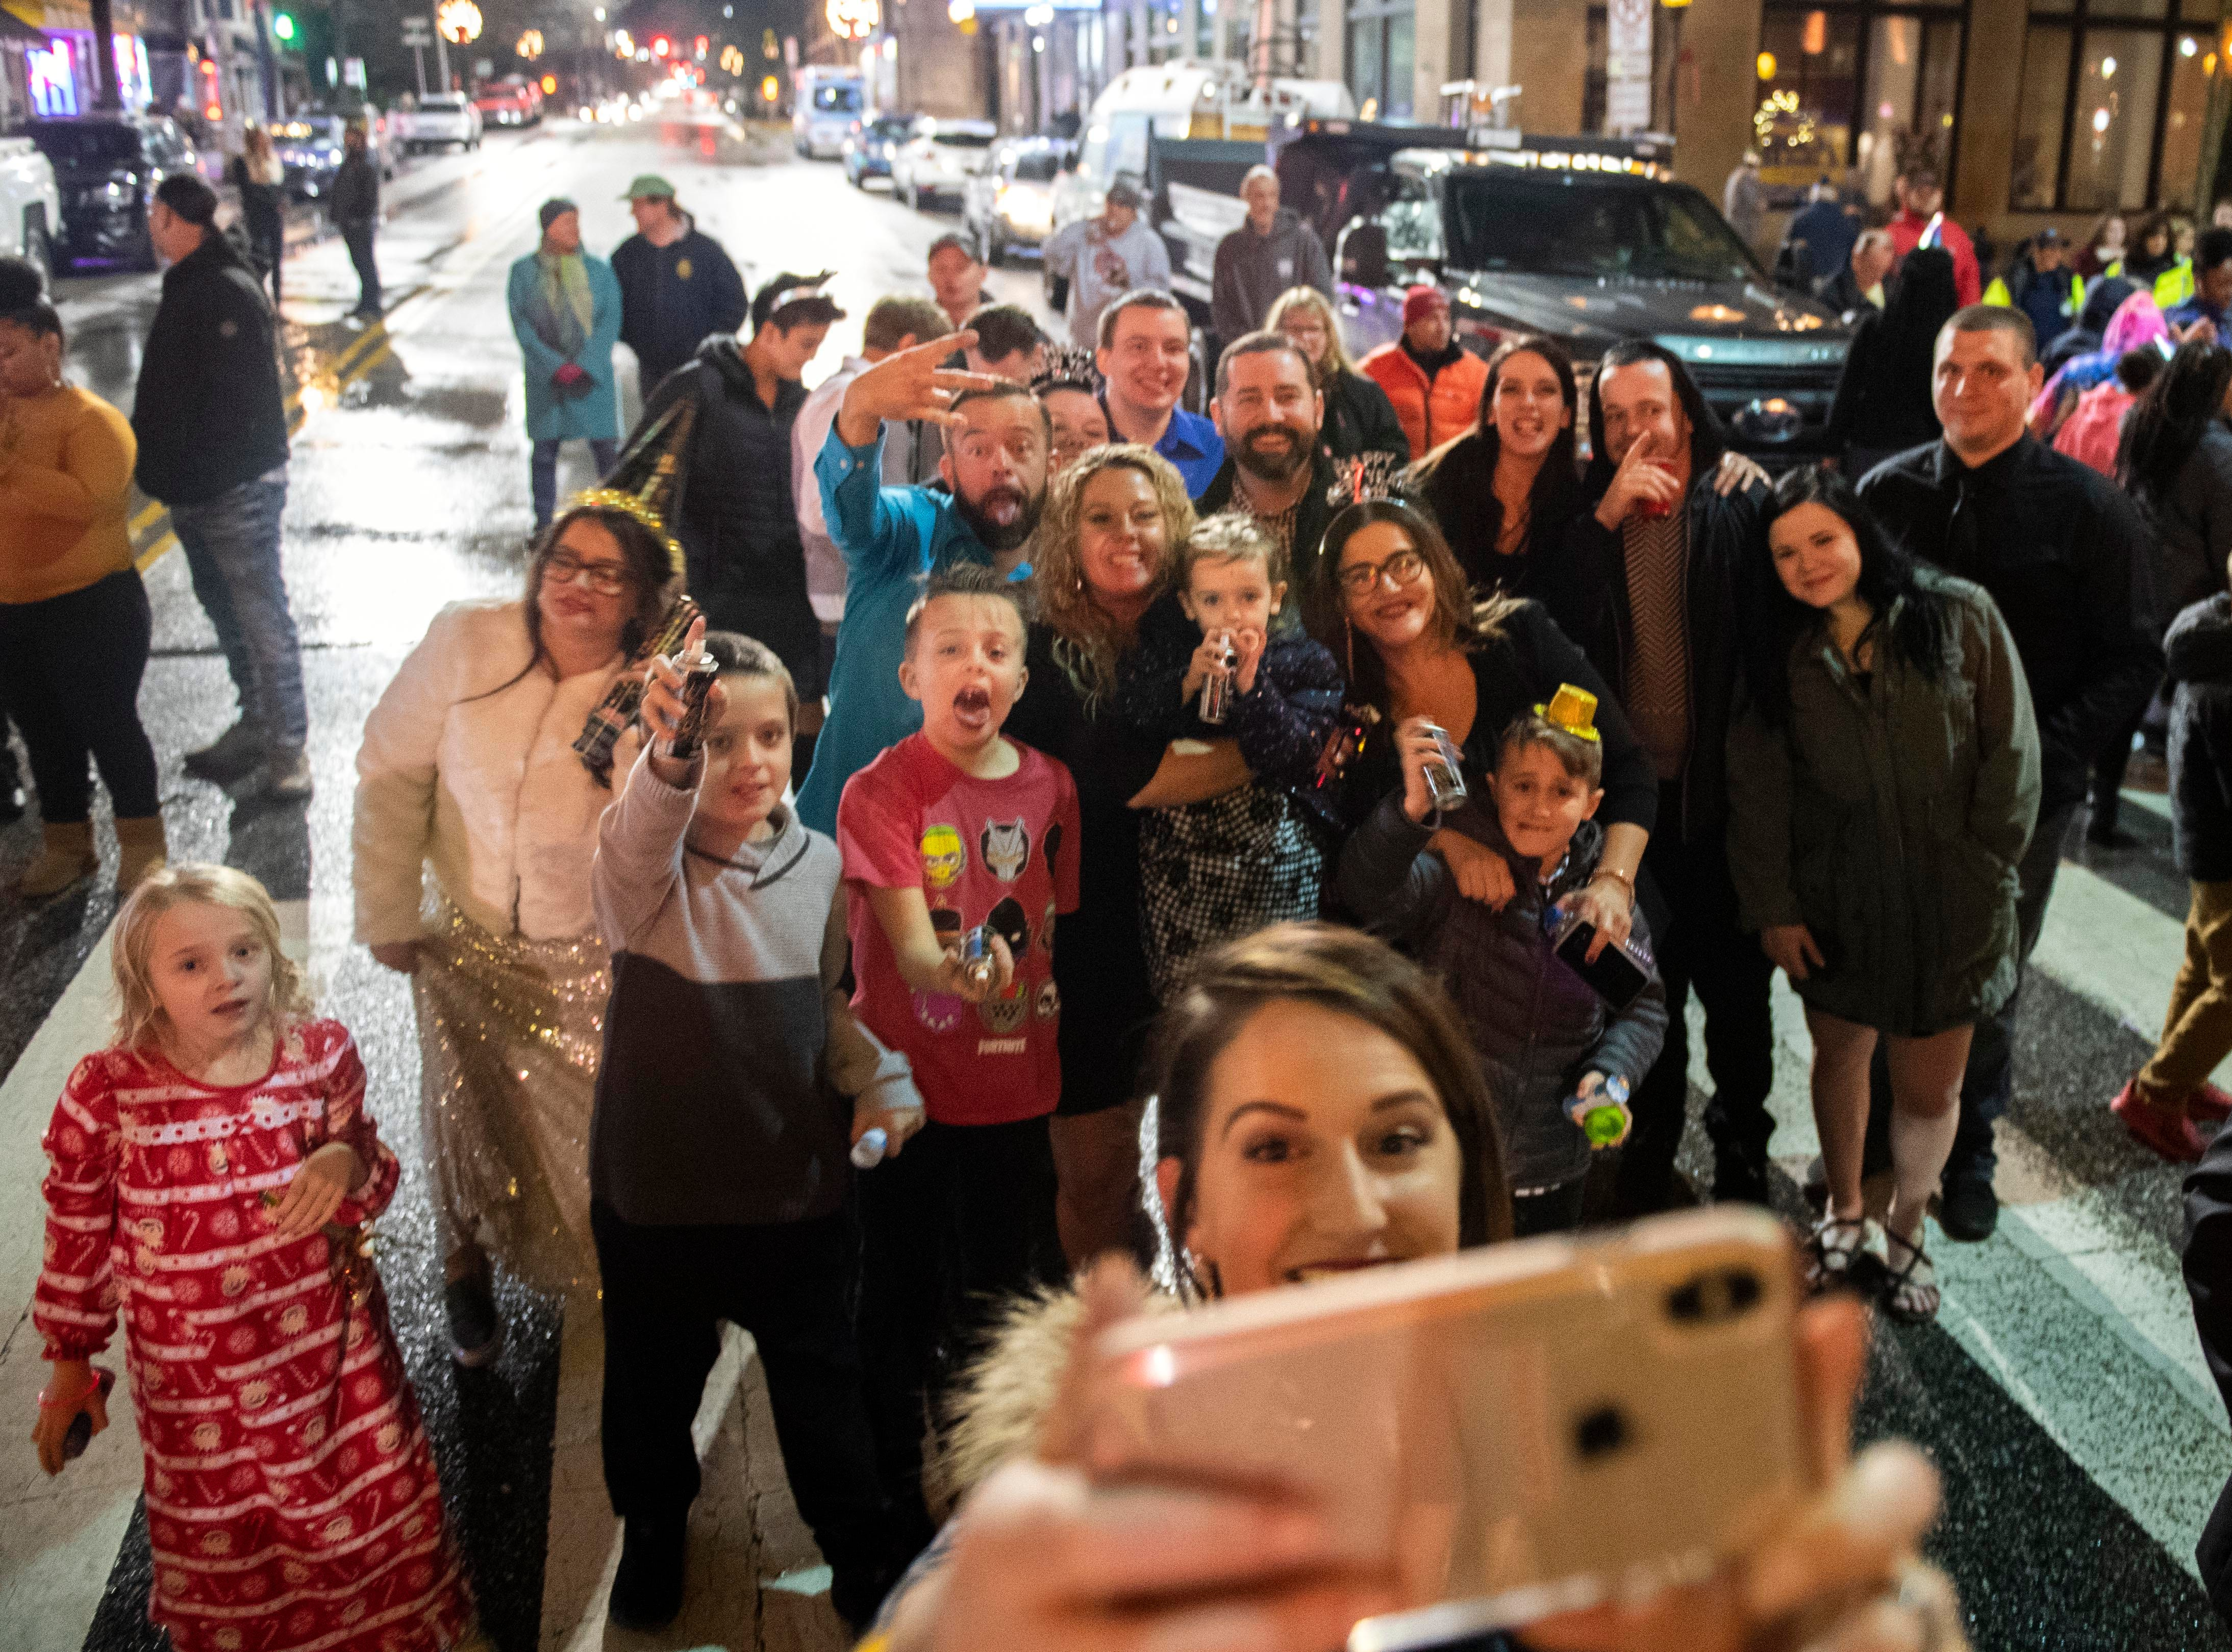 A group poses for a photo prior to the white rose dropping to ring in the new year in Continental Square downtown, Monday, Dec. 31, 2018. Hundreds gathered to watch the white rose drop, dance and ring in the new year.